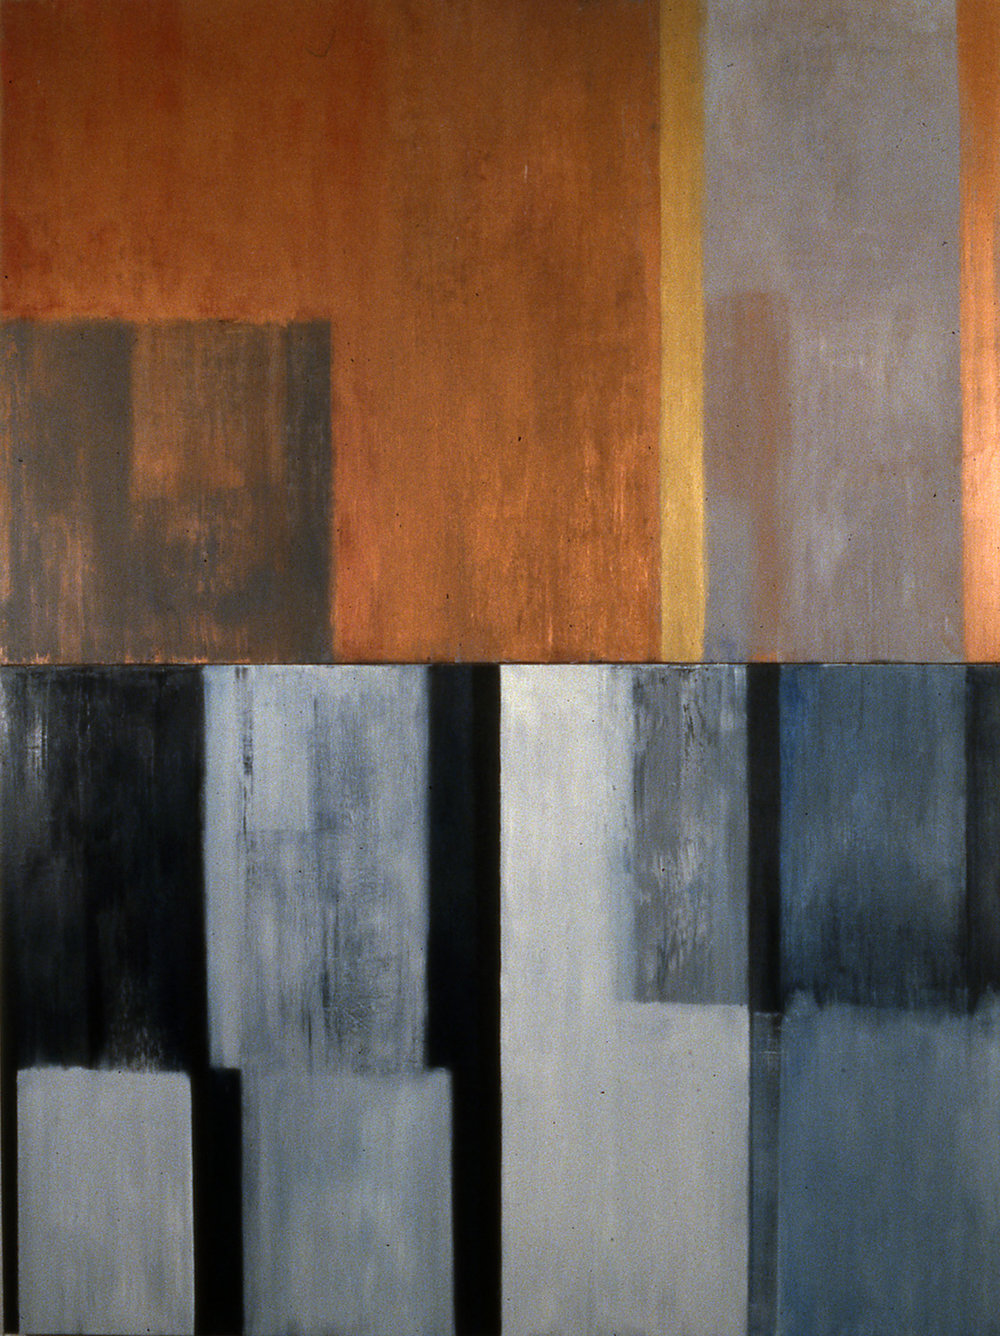 Gate, 1993, Oil, acrylic on canvas over panels, 96 x 84 inches.